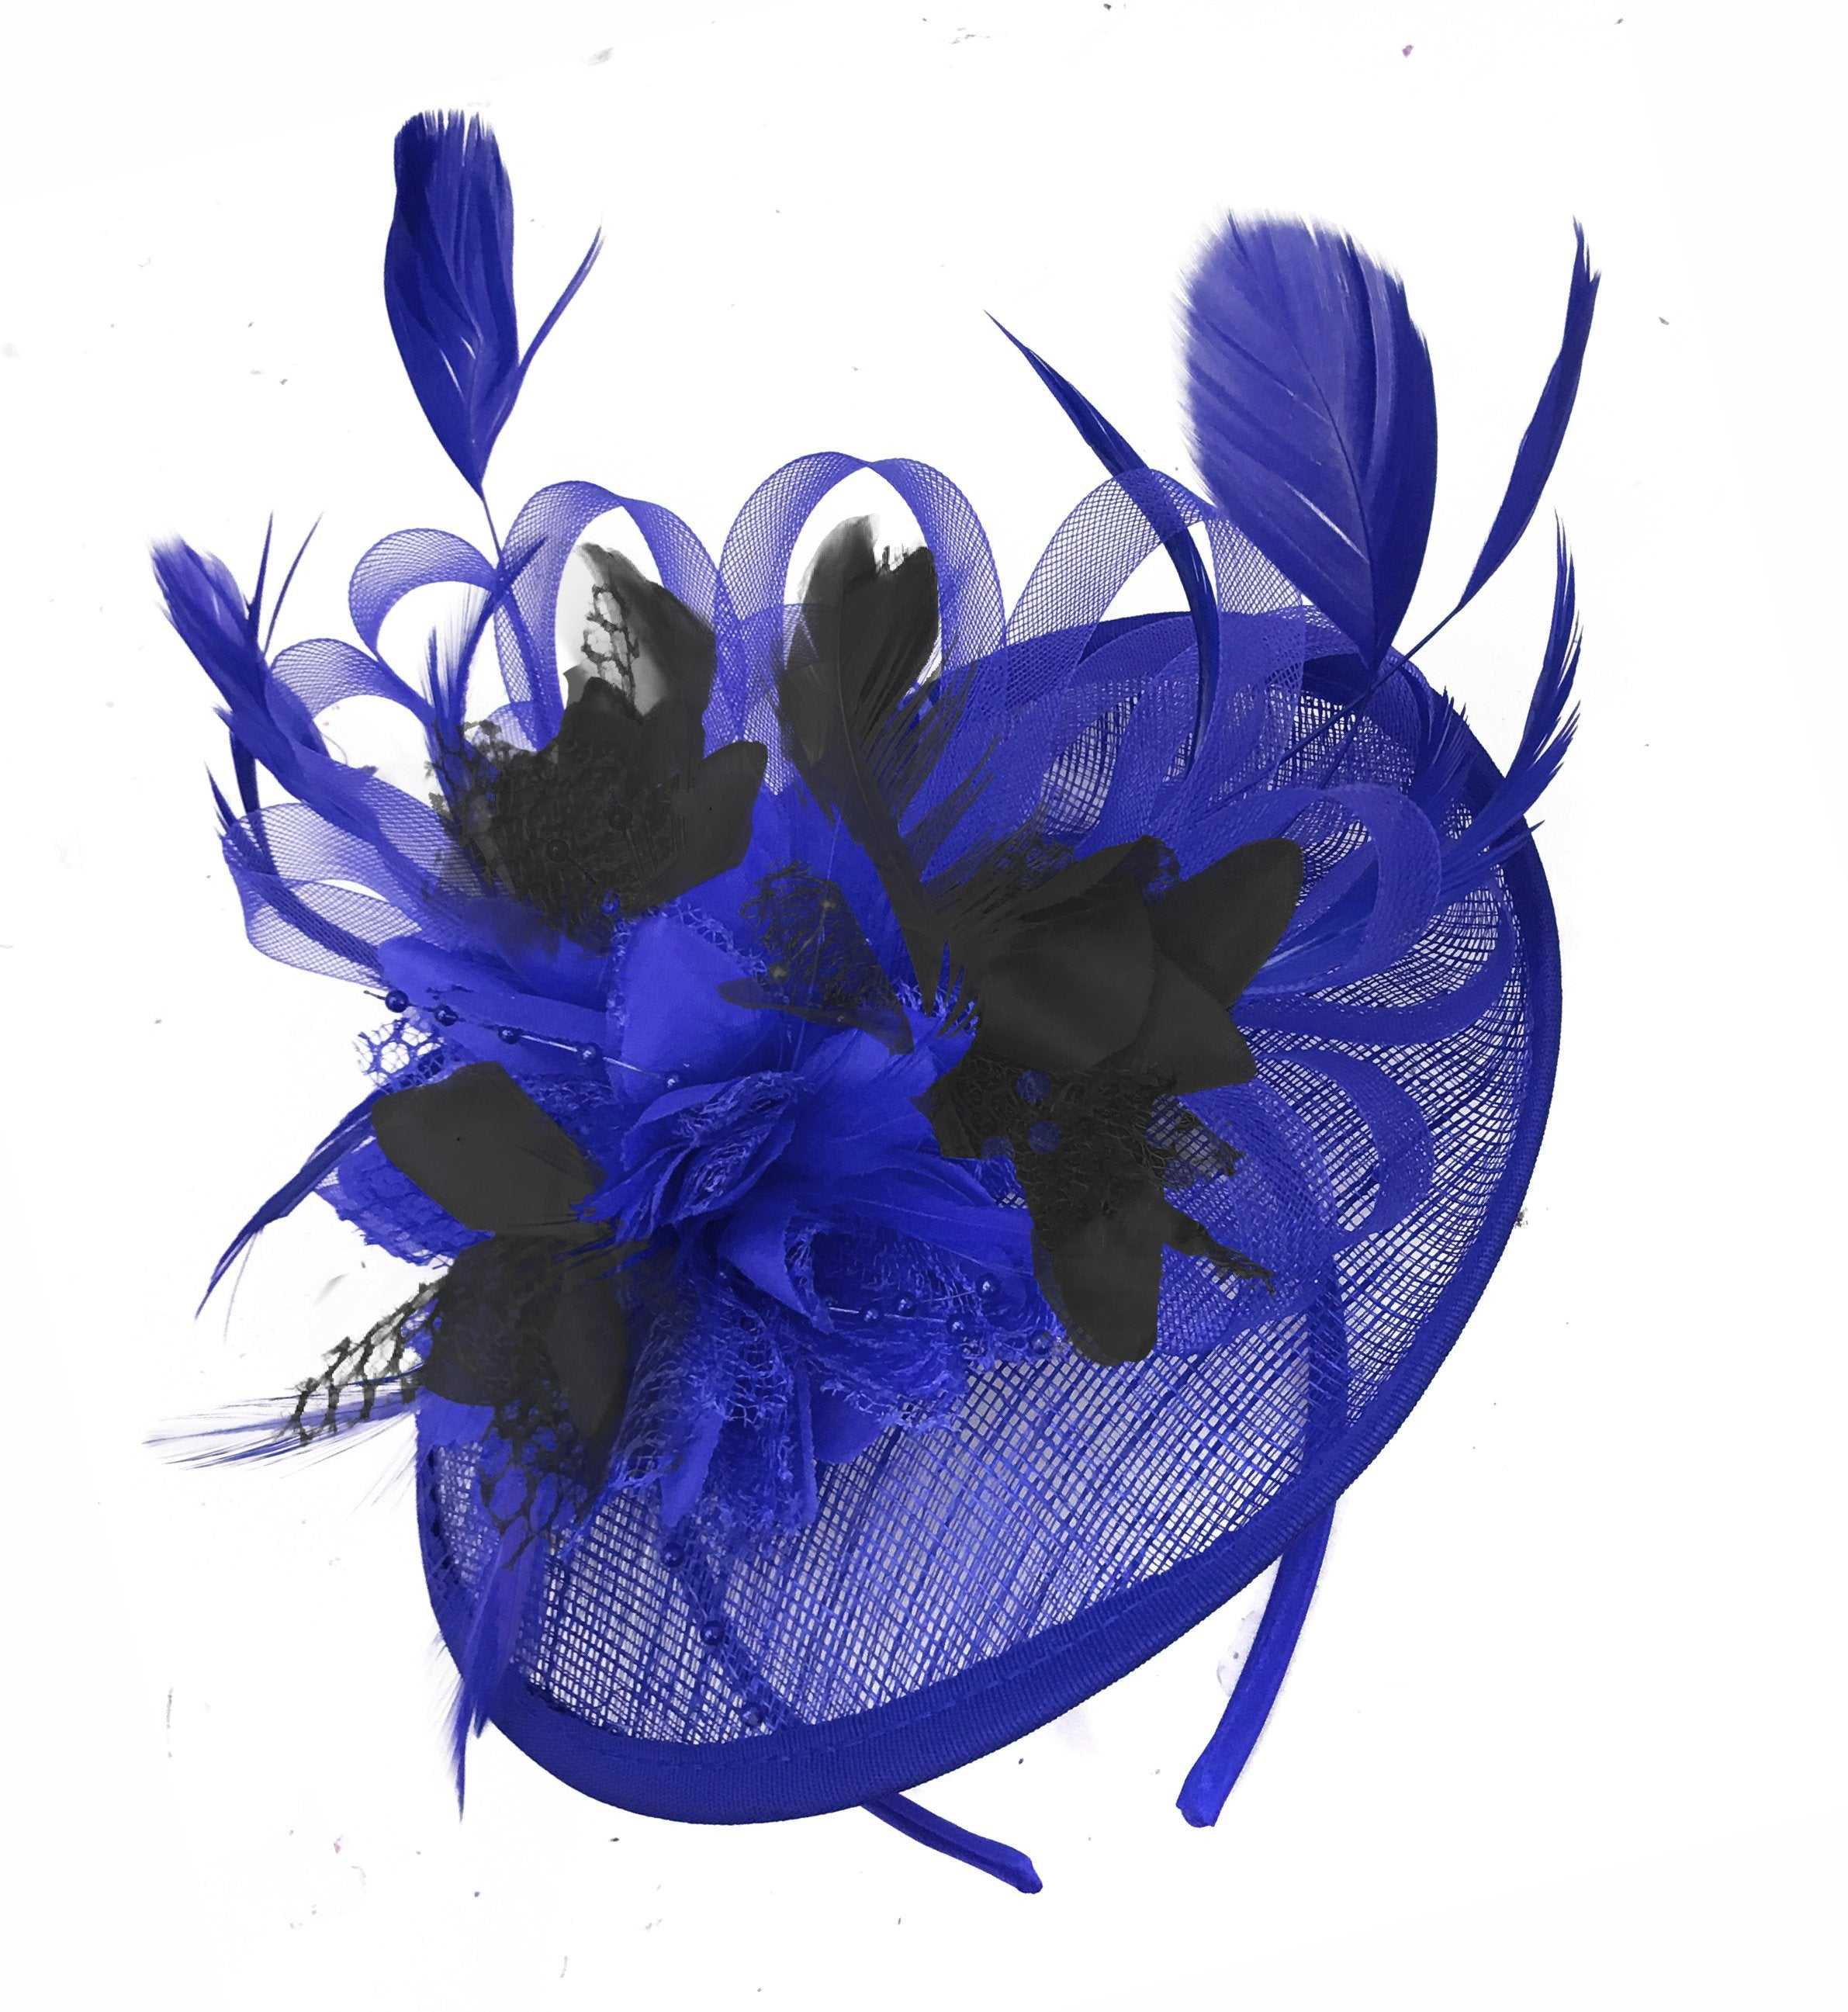 Caprilite Blue and Black Sinamay Disc Saucer Fascinator Hat for Women Weddings Headband